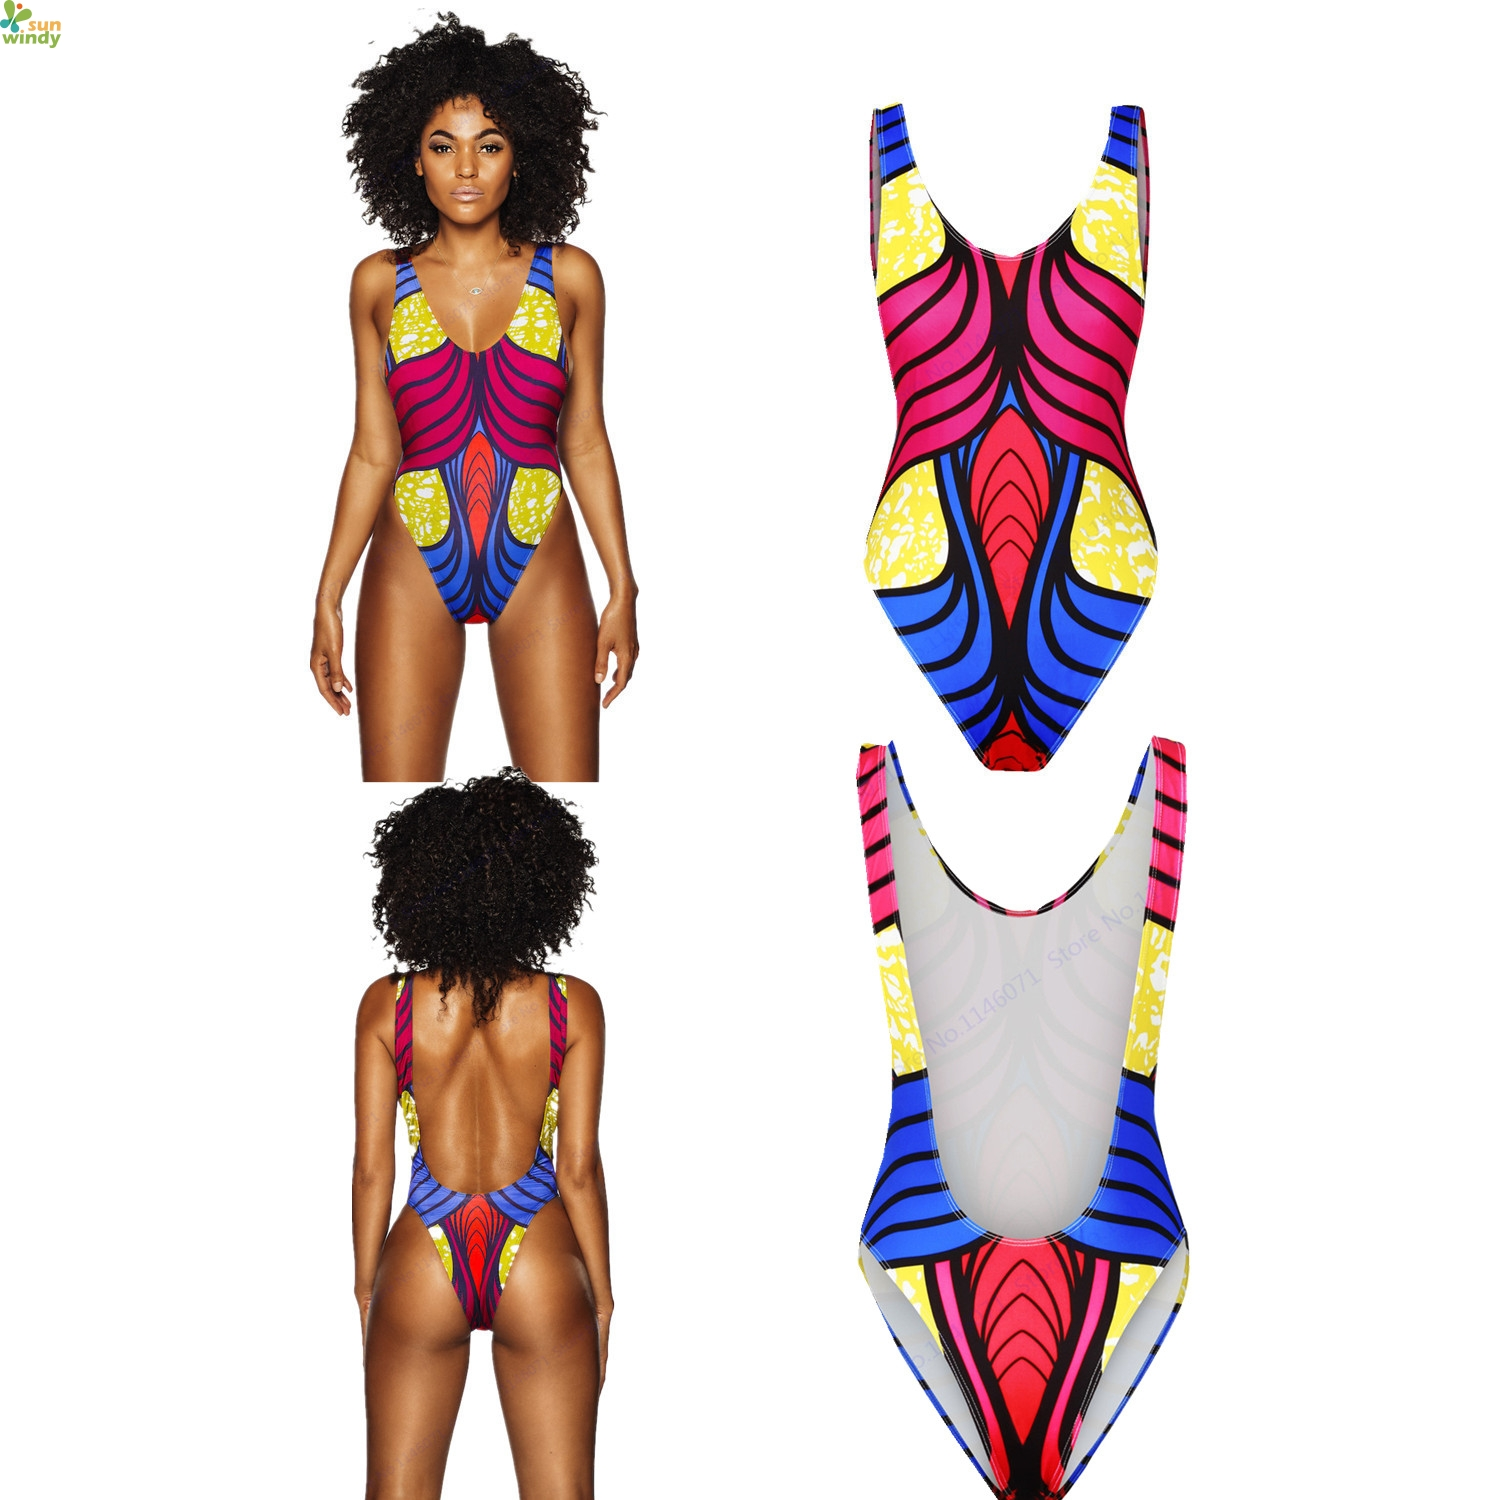 de9569ec56 Multicolor Stripes Bathing Suit Women's Backless One Piece Monokini Bikinis  Sexy High Cut Bathing Suits U Back Brazilian Biquini-in Body Suits from  Sports ...